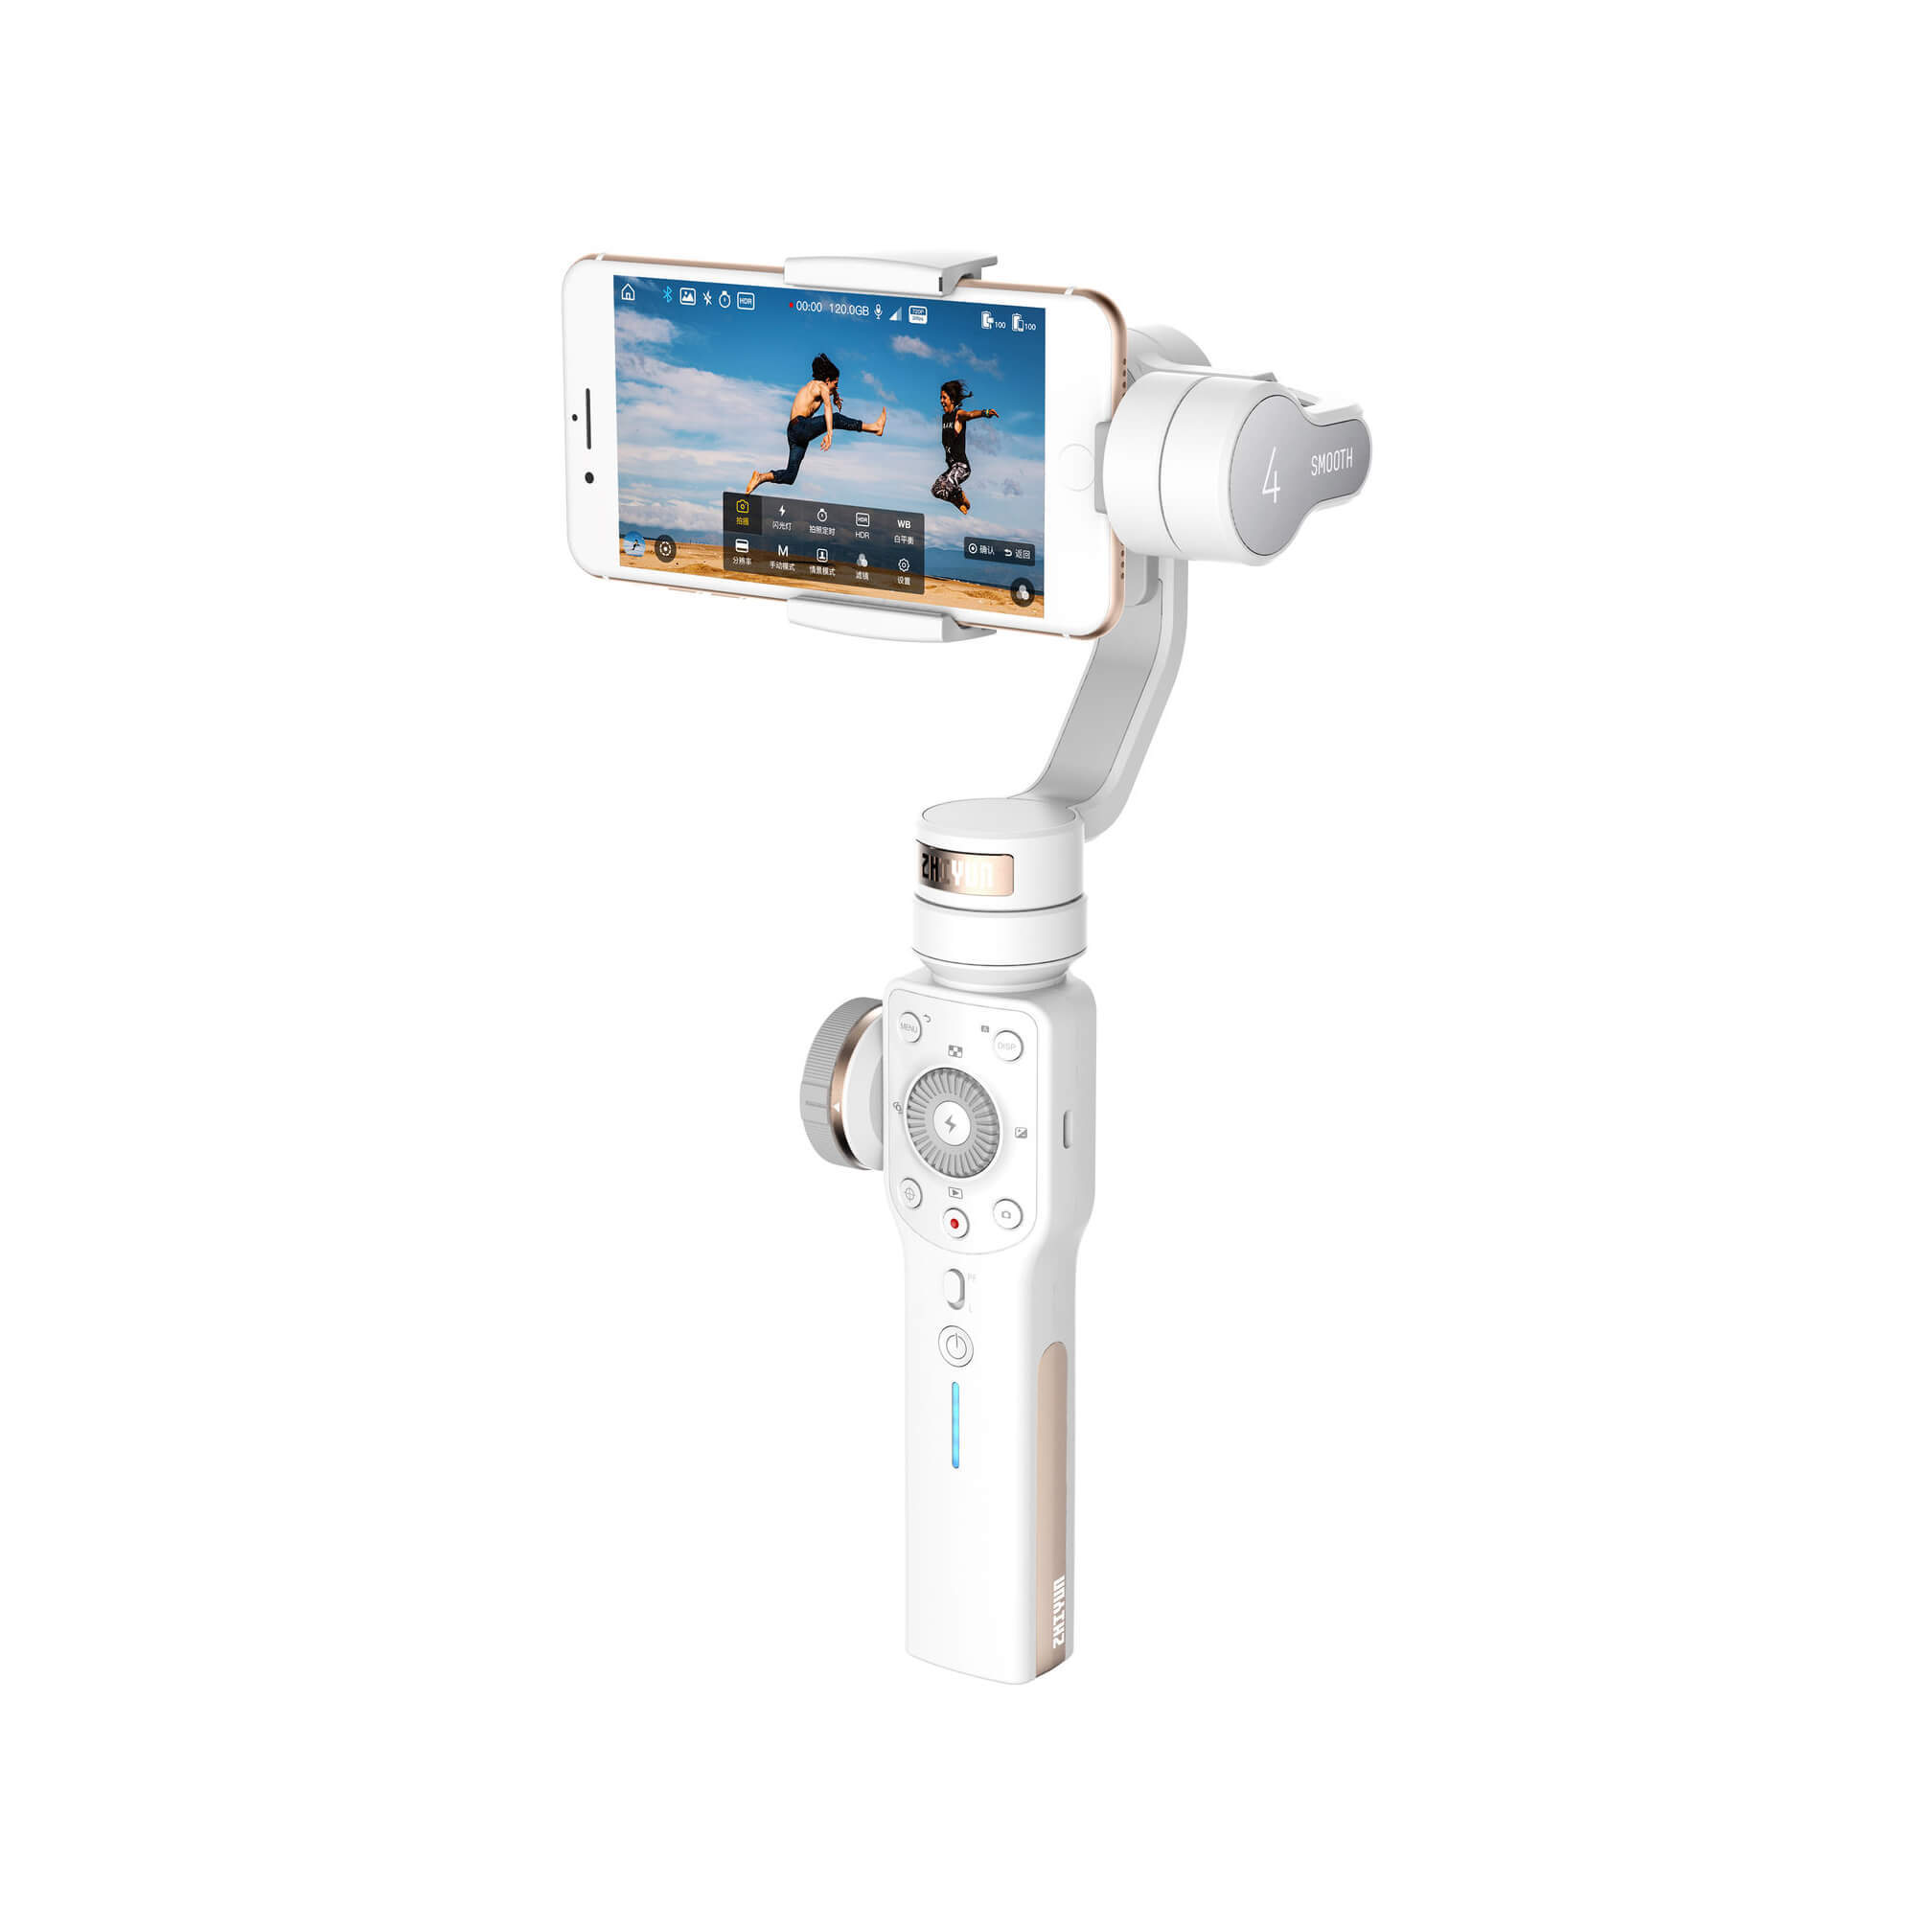 Zhiyun стабилизаторы Zhiyun Smooth 4 (белый цвет) ZHIYUN-SMOOTH-4-WHITE.jpeg